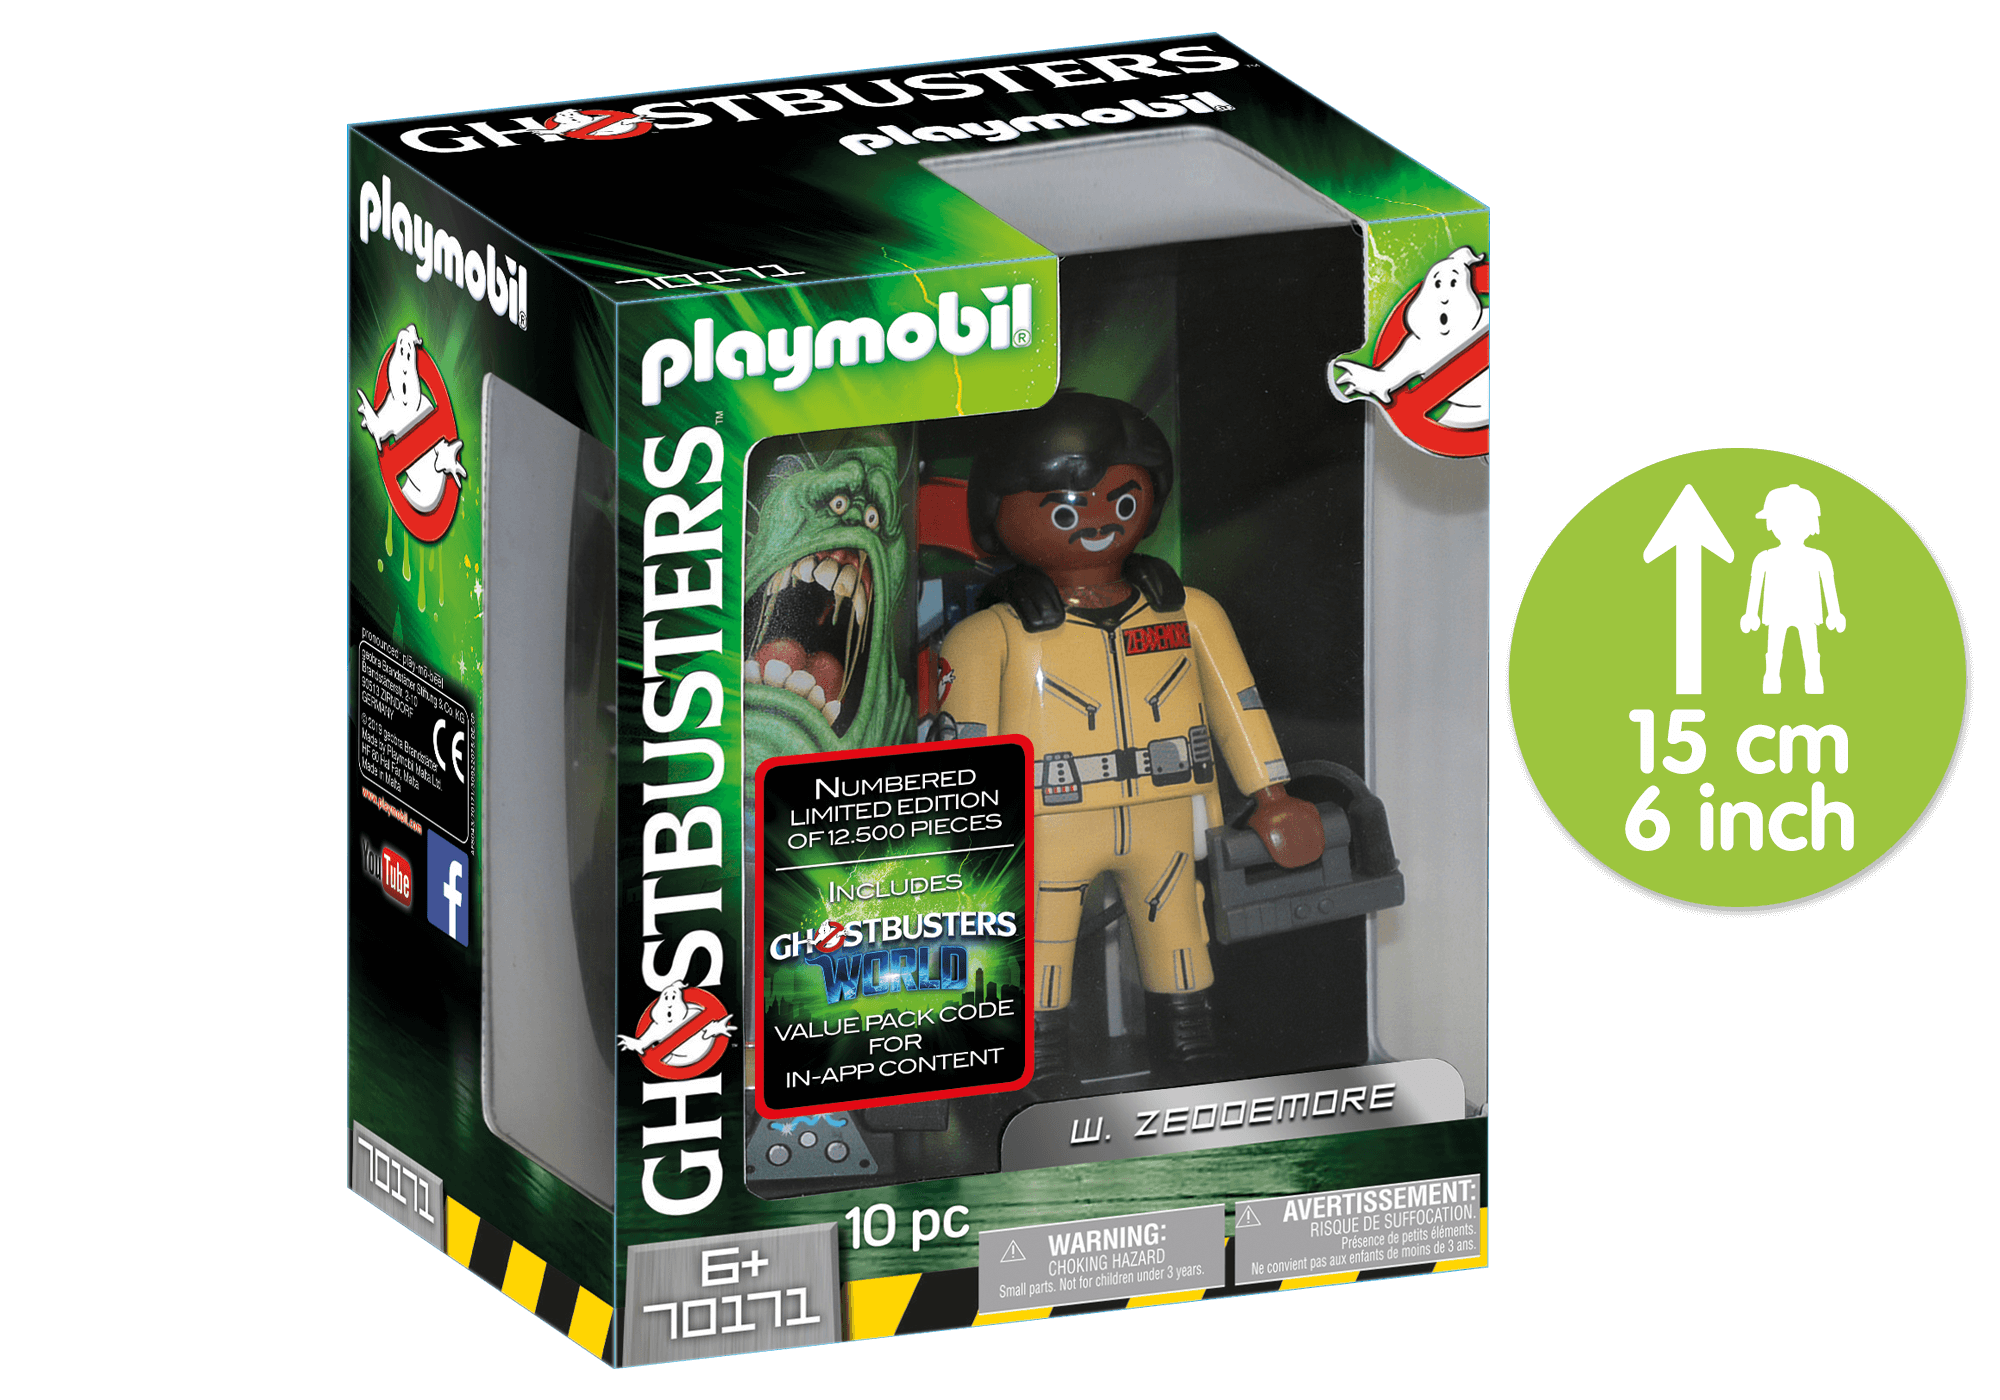 http://media.playmobil.com/i/playmobil/70171_product_detail/Ghostbusters™ Collector's Edition W. Zeddemore